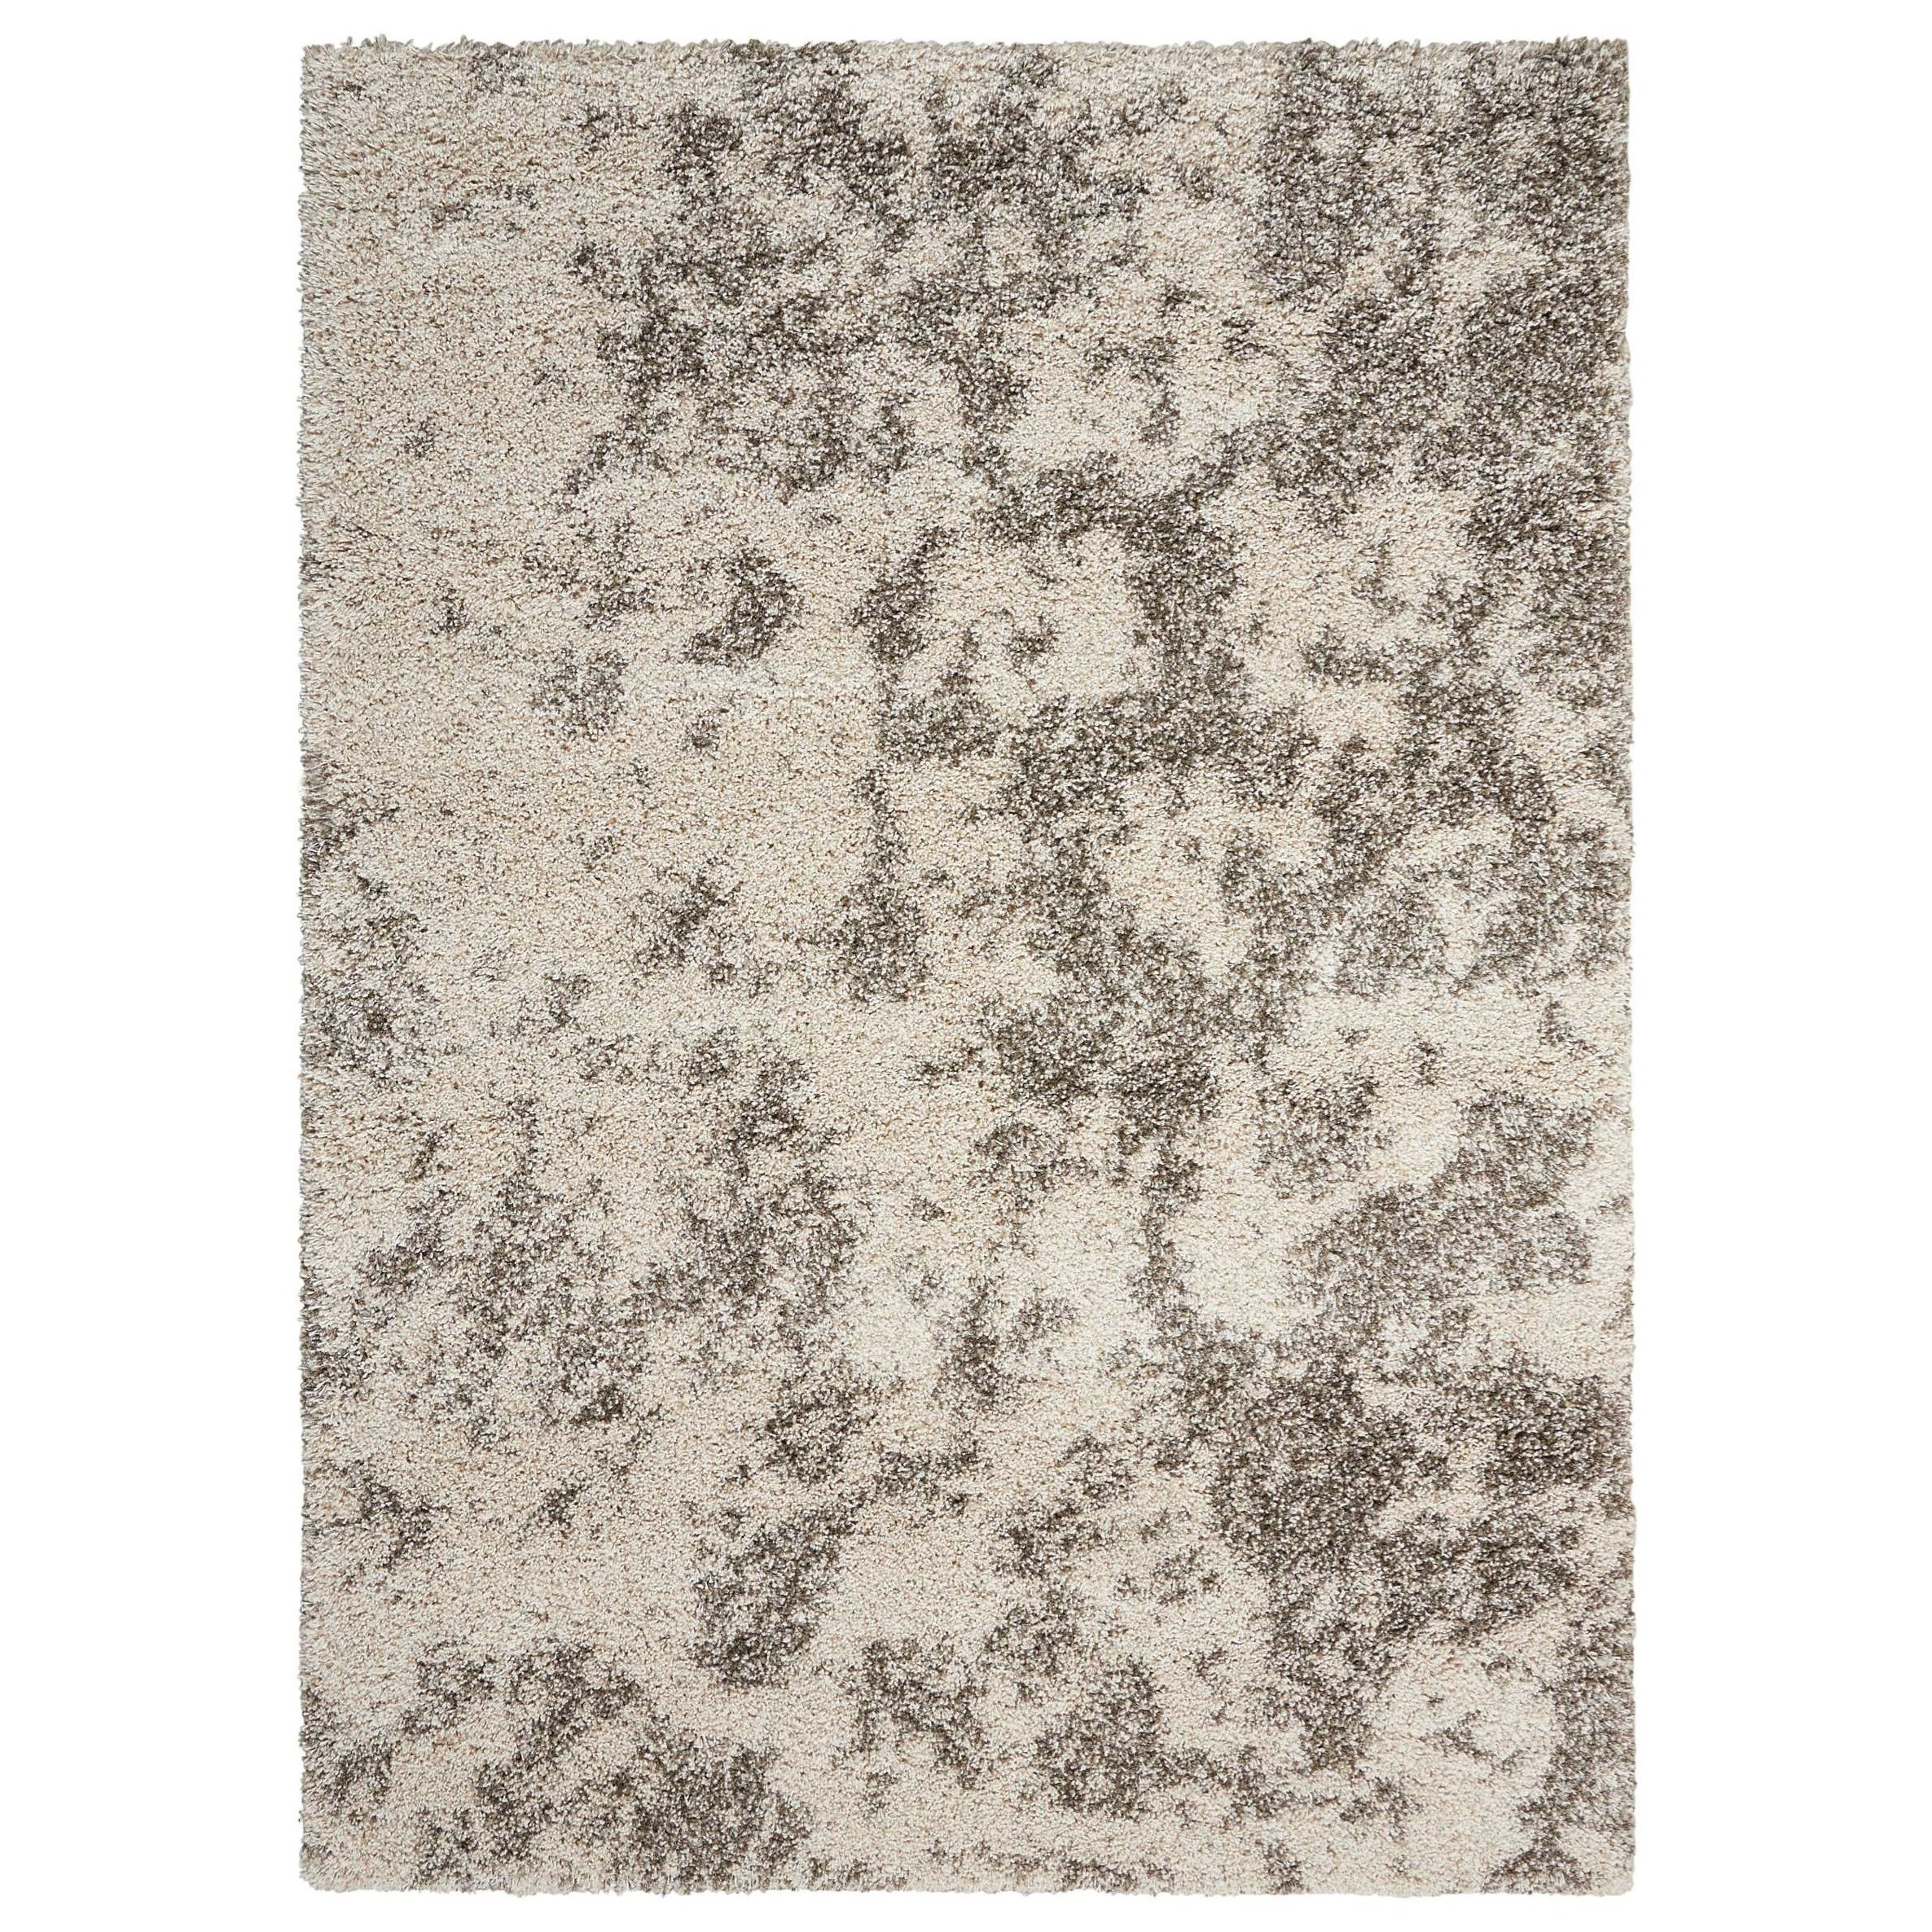 "Amore 3'11"" x 5'11"" Cobble Stone Rectangle Rug by Nourison at Sprintz Furniture"